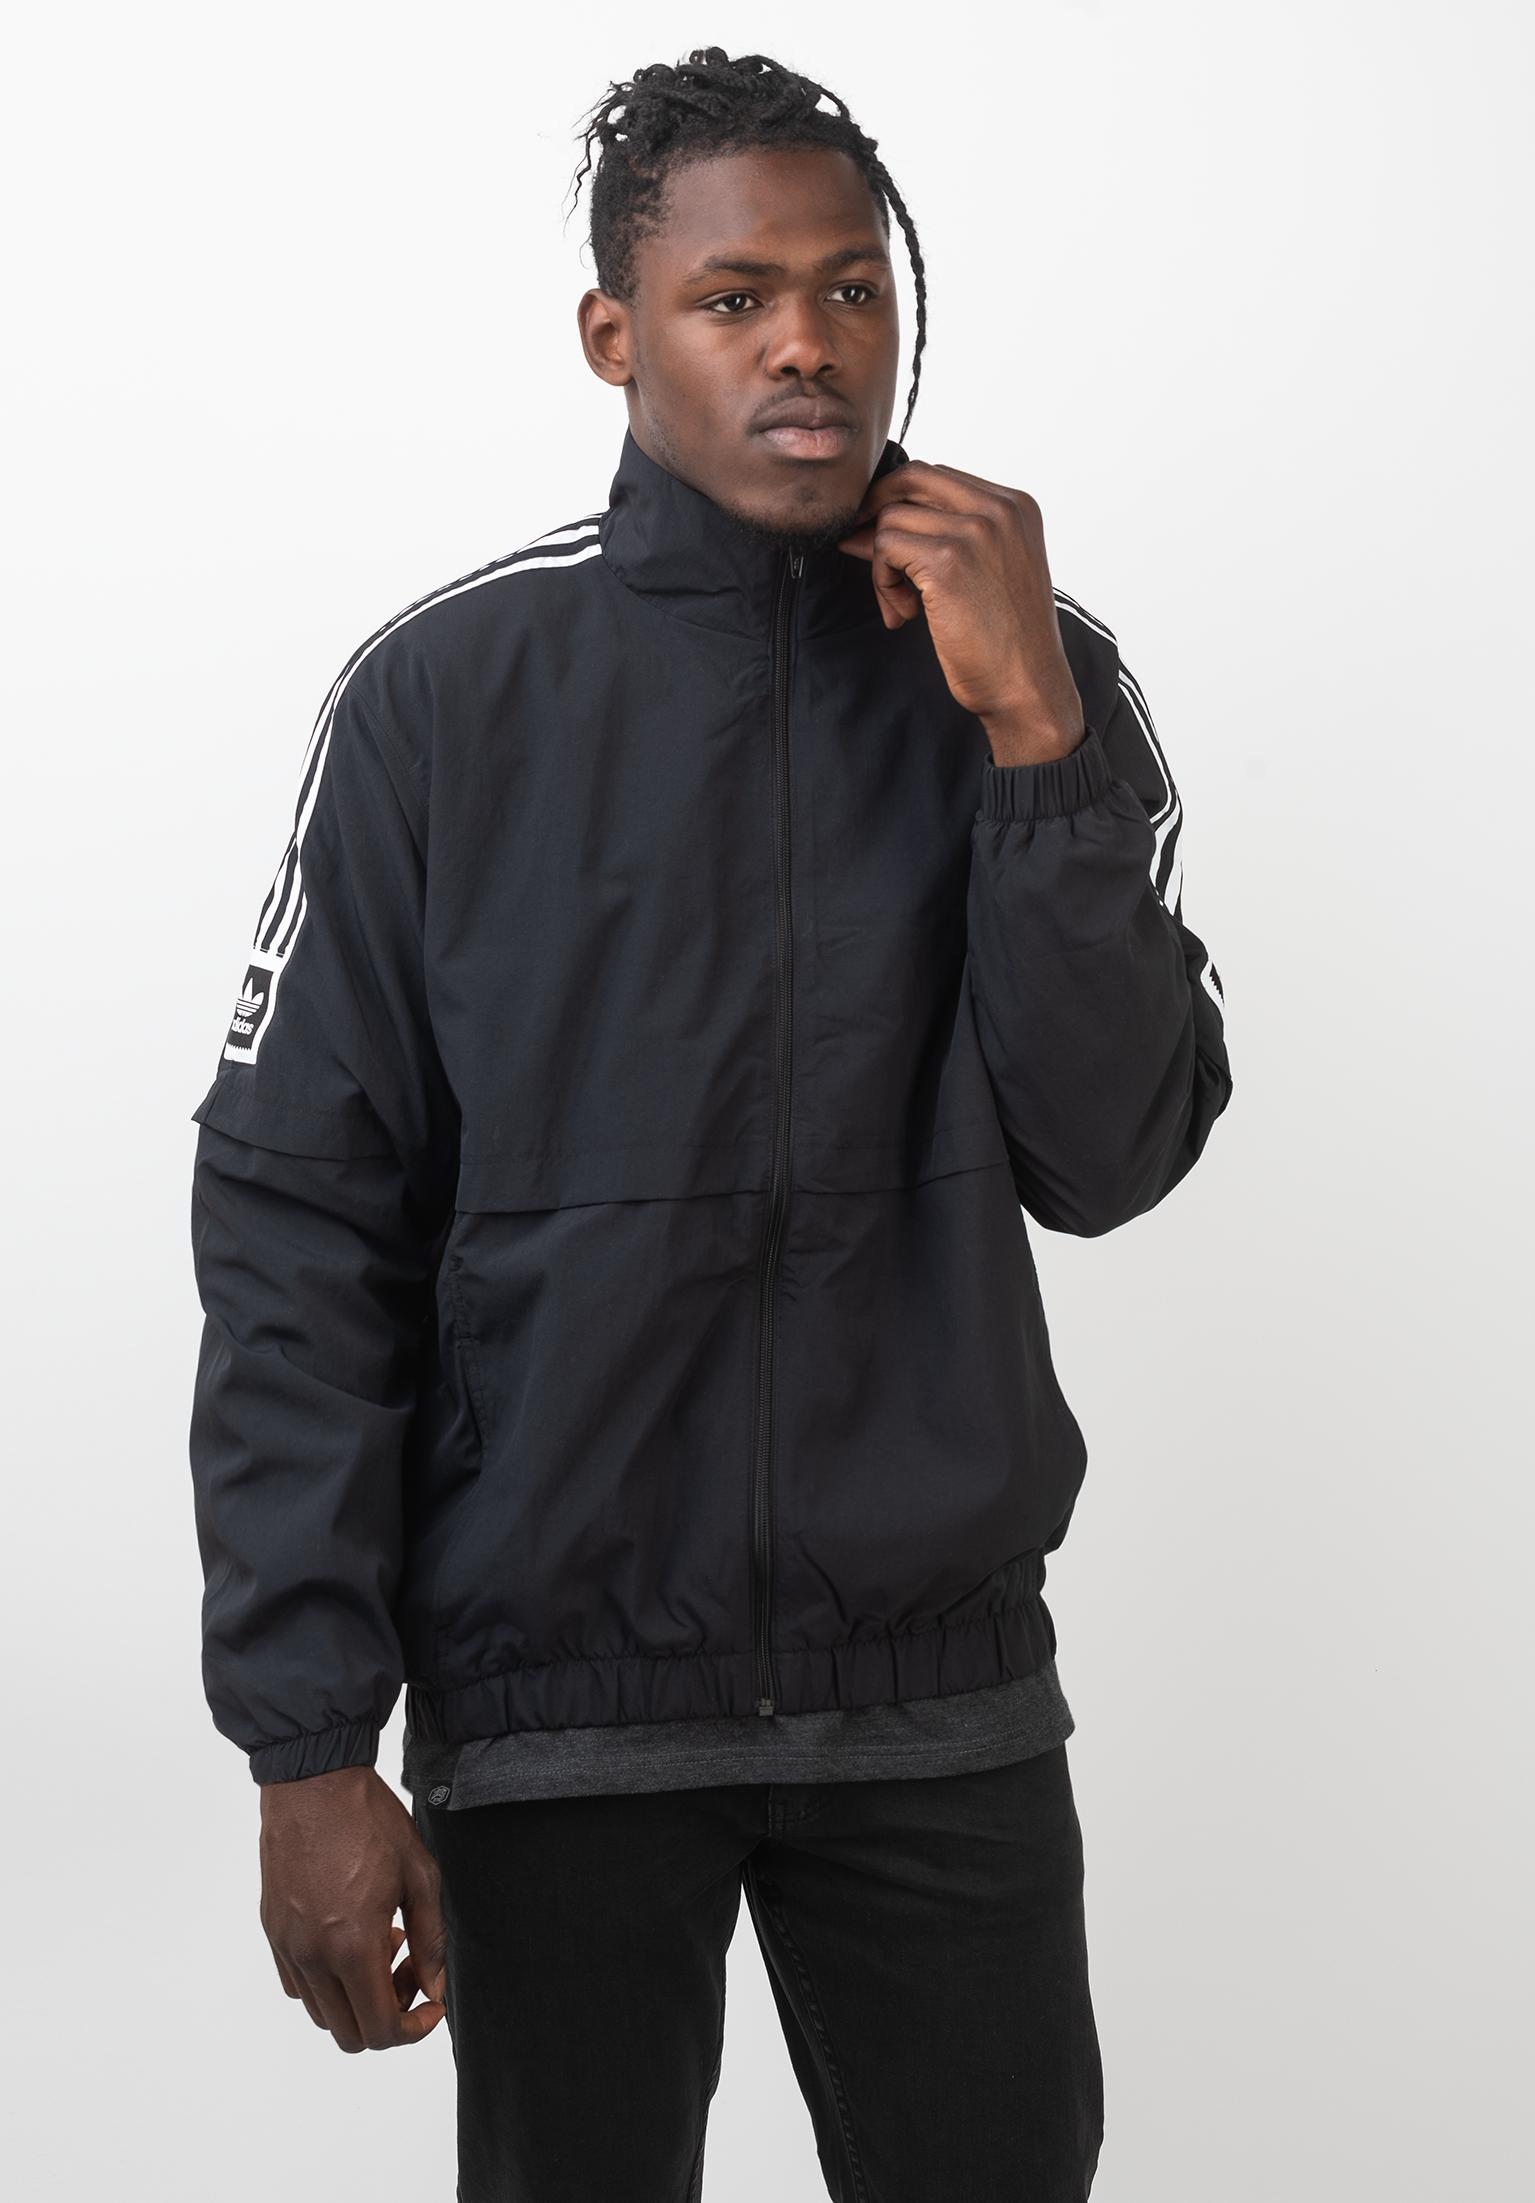 59a265b000a25 Get Jackets for Men in the Titus Onlineshop   Titus